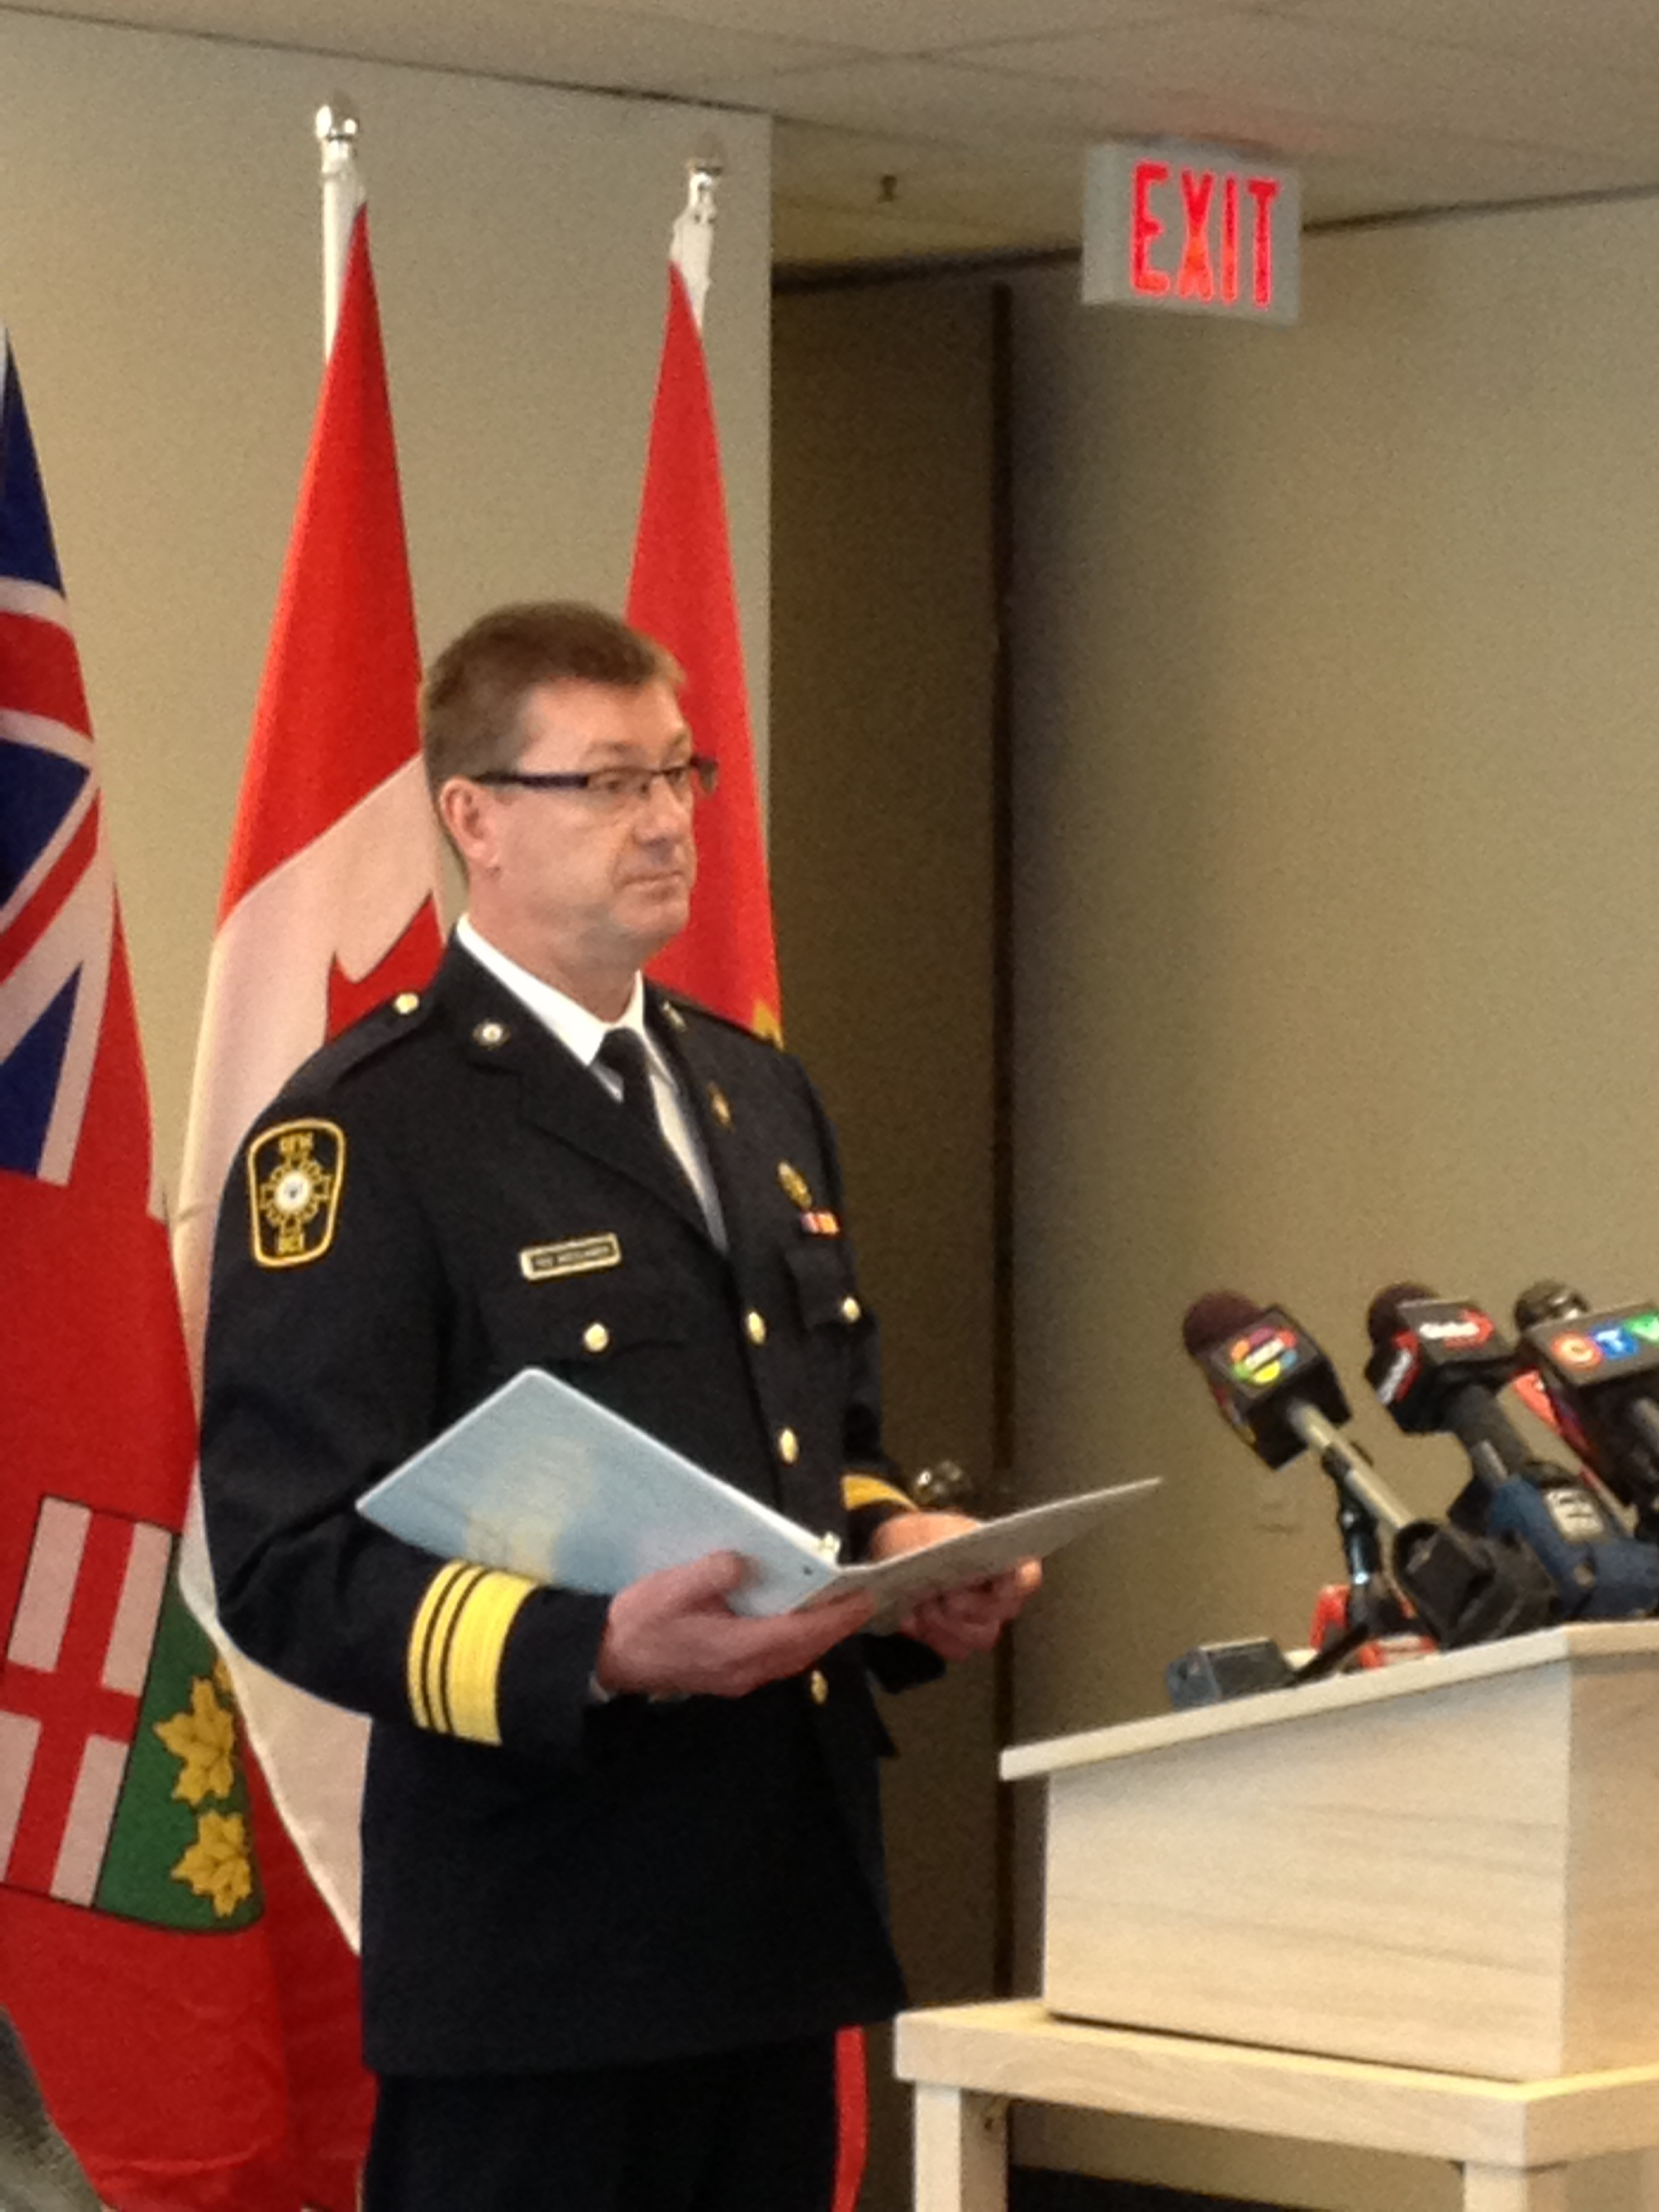 eastgwillimbury-pressconf-photo5-2